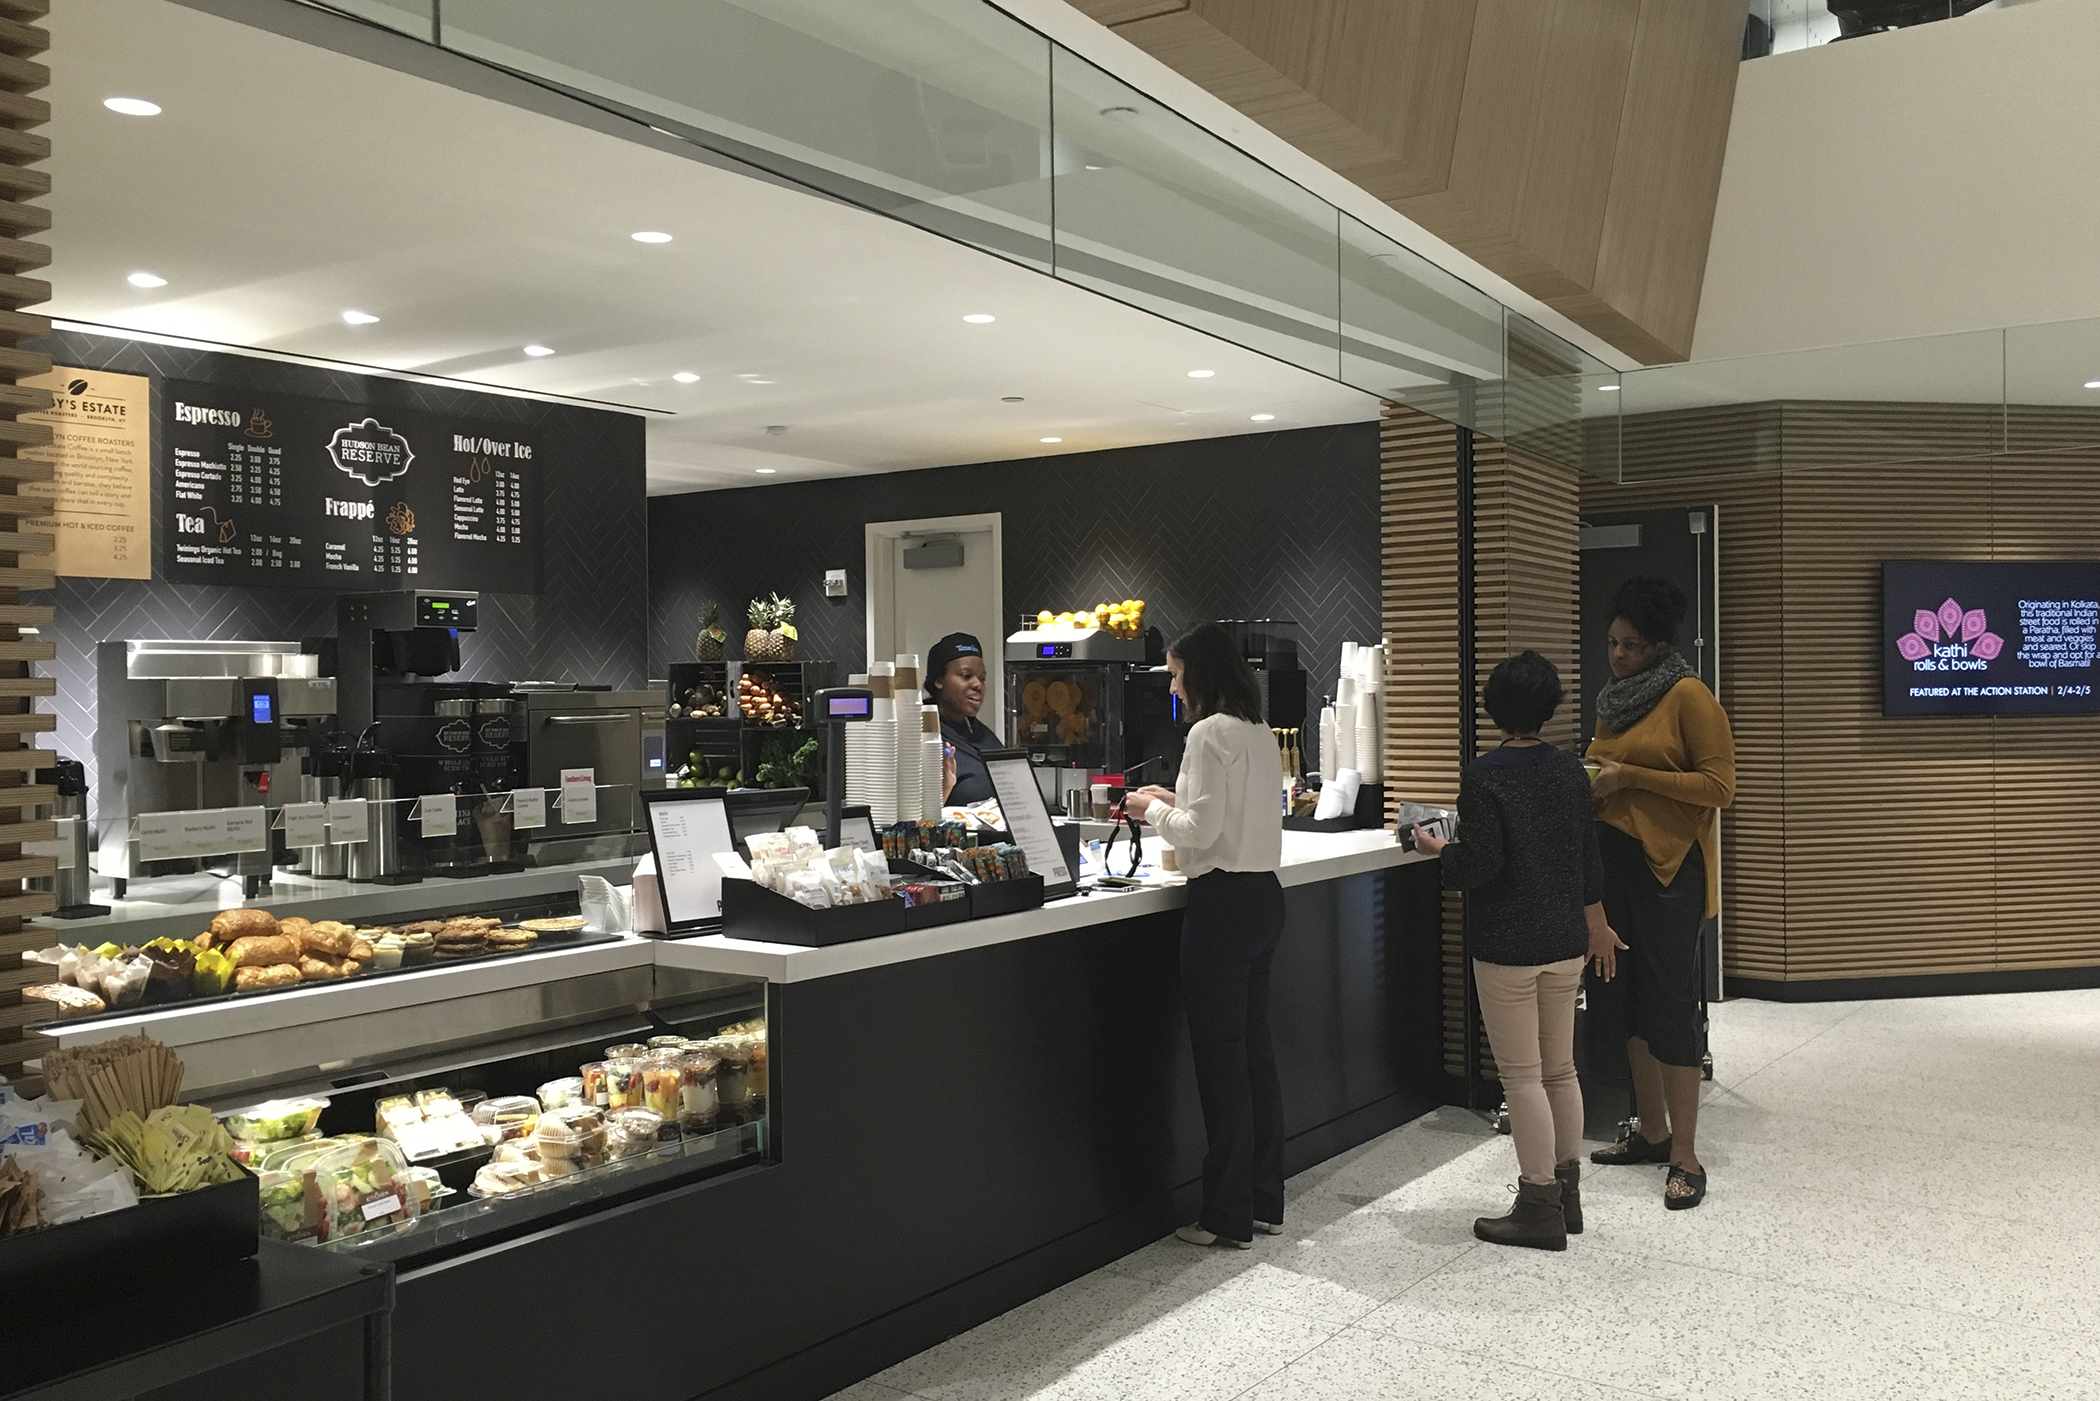 Press coffee and smoothie bar inside of Time Inc.'s offices at 225 Liberty Street.